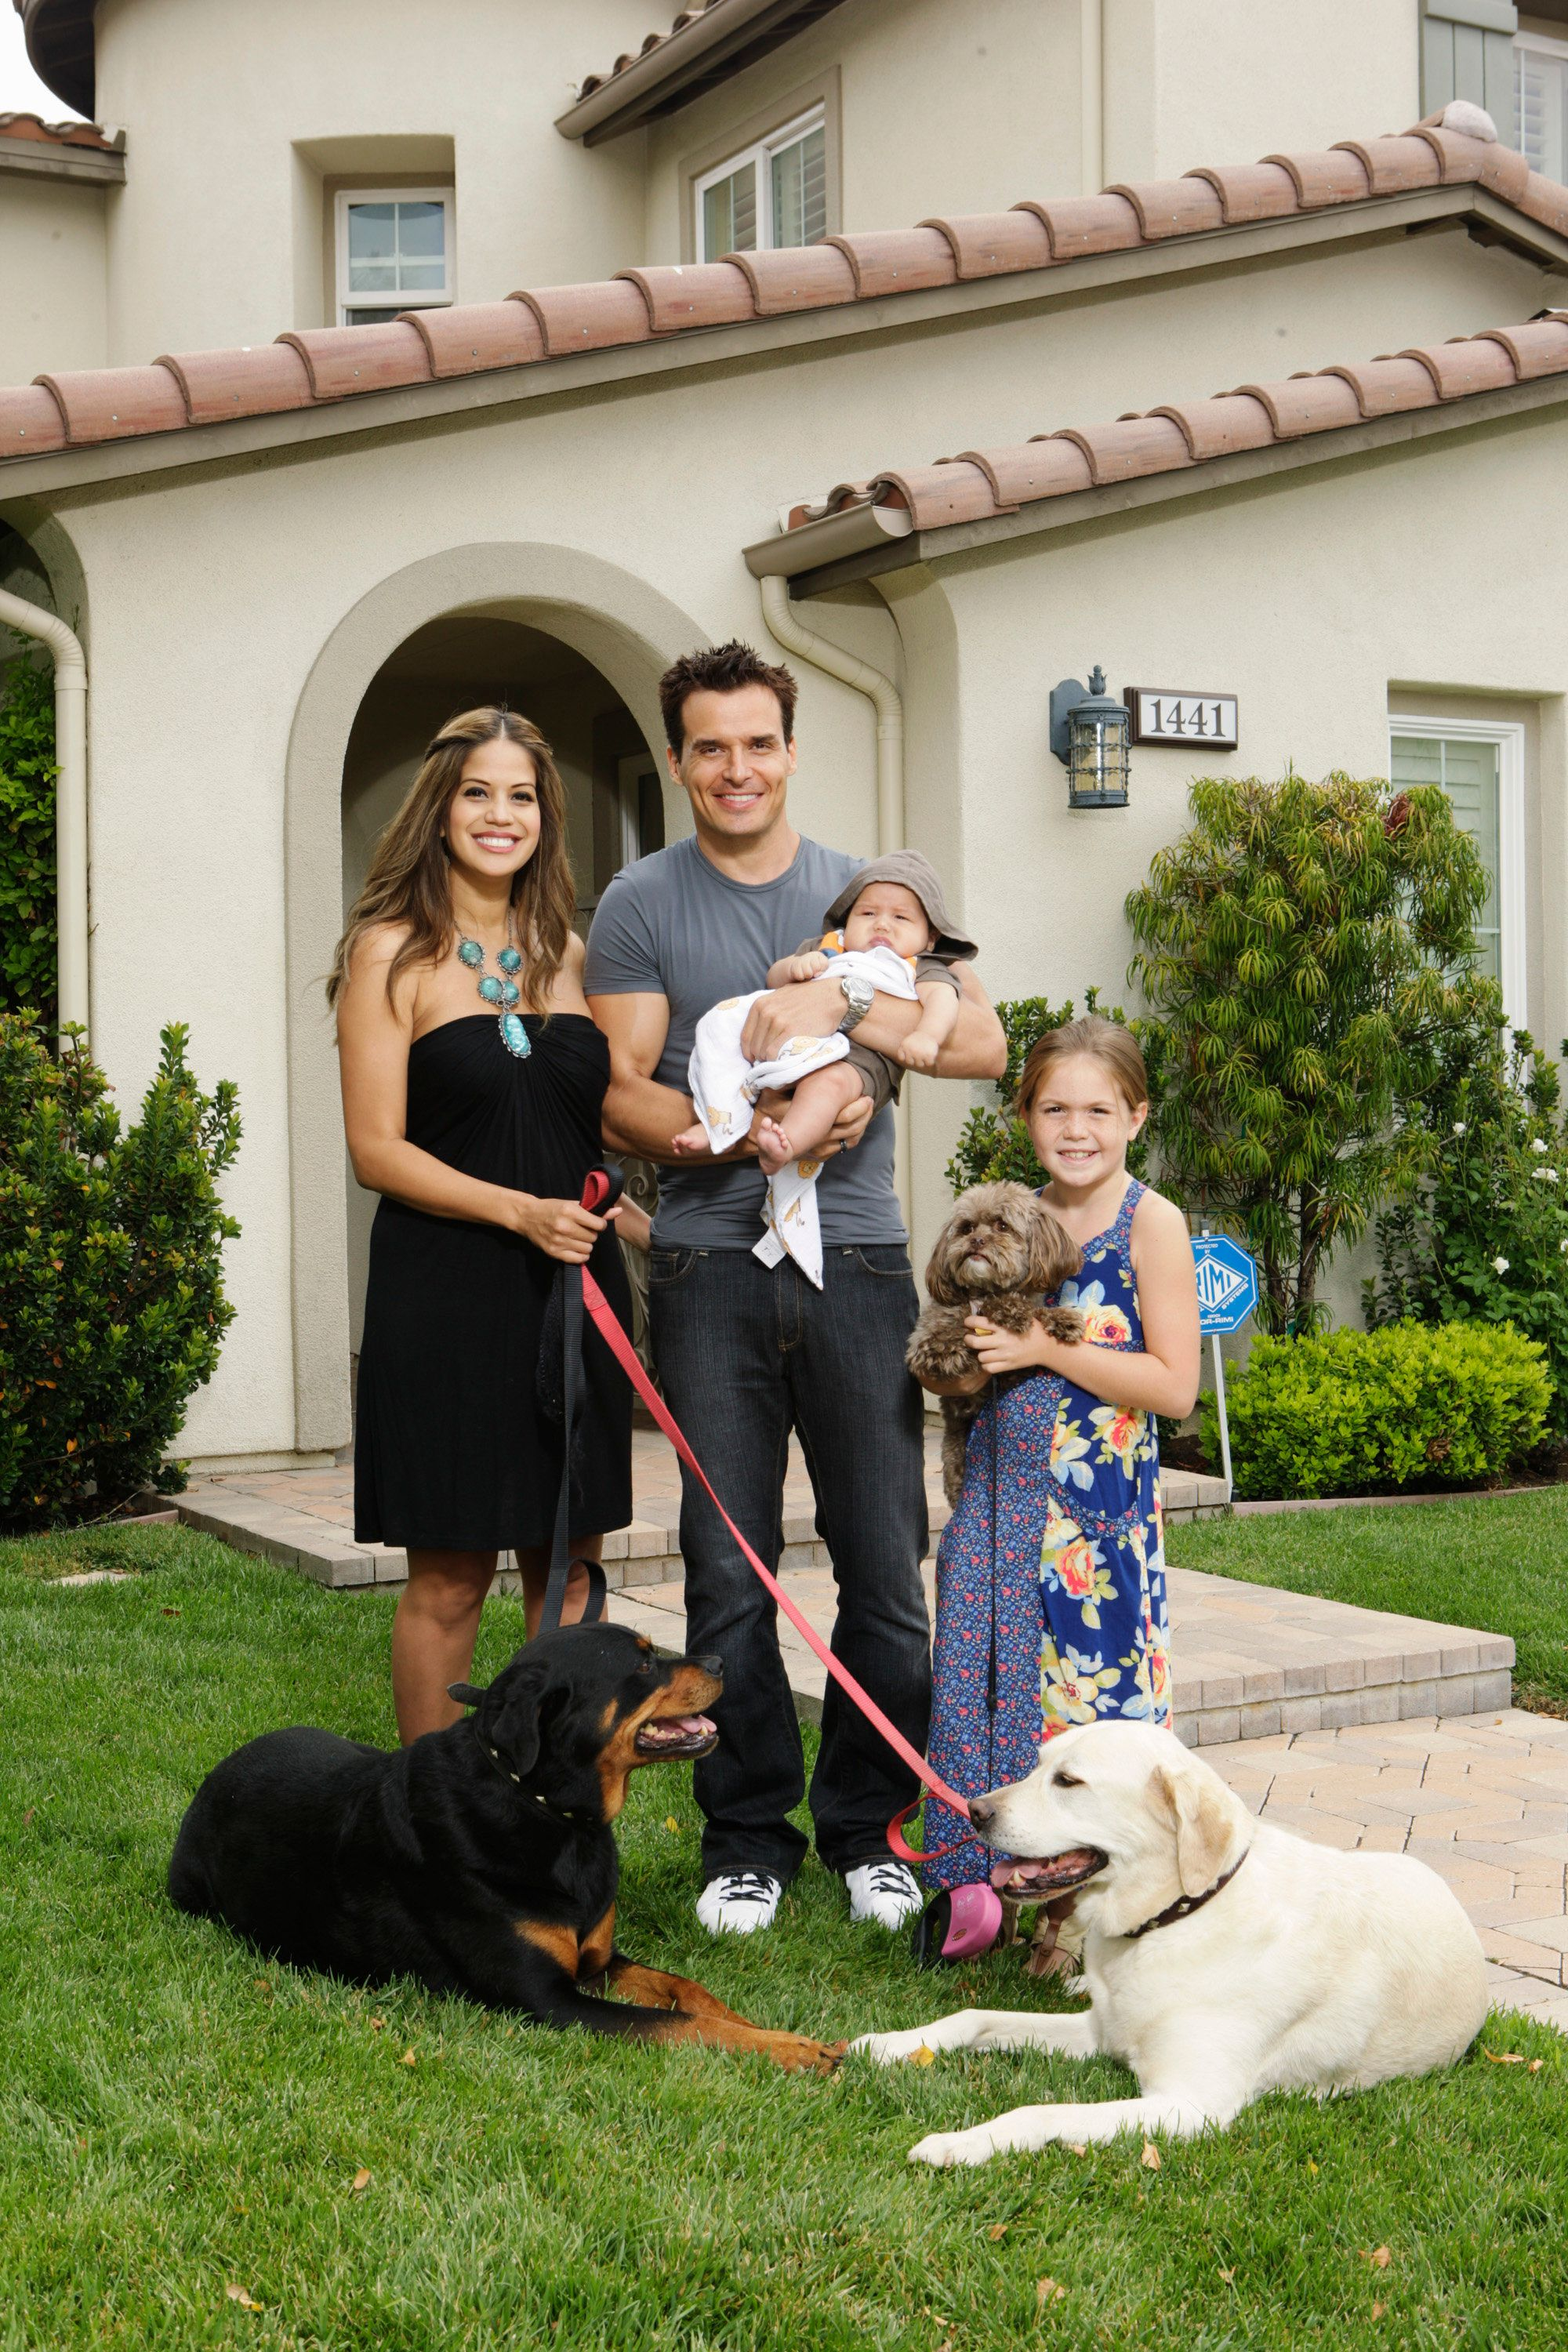 CELEBRITY WIFE SWAP - Five celebrity couples -- including MICK FOLEY, professional wrestler/writer, and ANTONIO SABATO JR., actor/model -- will put a new spin on the critically-acclaimed reality series, 'Wife Swap,' in 'Celebrity Wife Swap,' premiering TUESDAY, JANUARY 3, 2012 (9:00-10:00 p.m., ET) on the ABC Television Network. (Photo by Dave Bentley/ABC via Getty Images)CHERYL MOANA MARIE, ANTONIO SABATO JR., ANTONIO SABATO III, MINA BREE SABATO